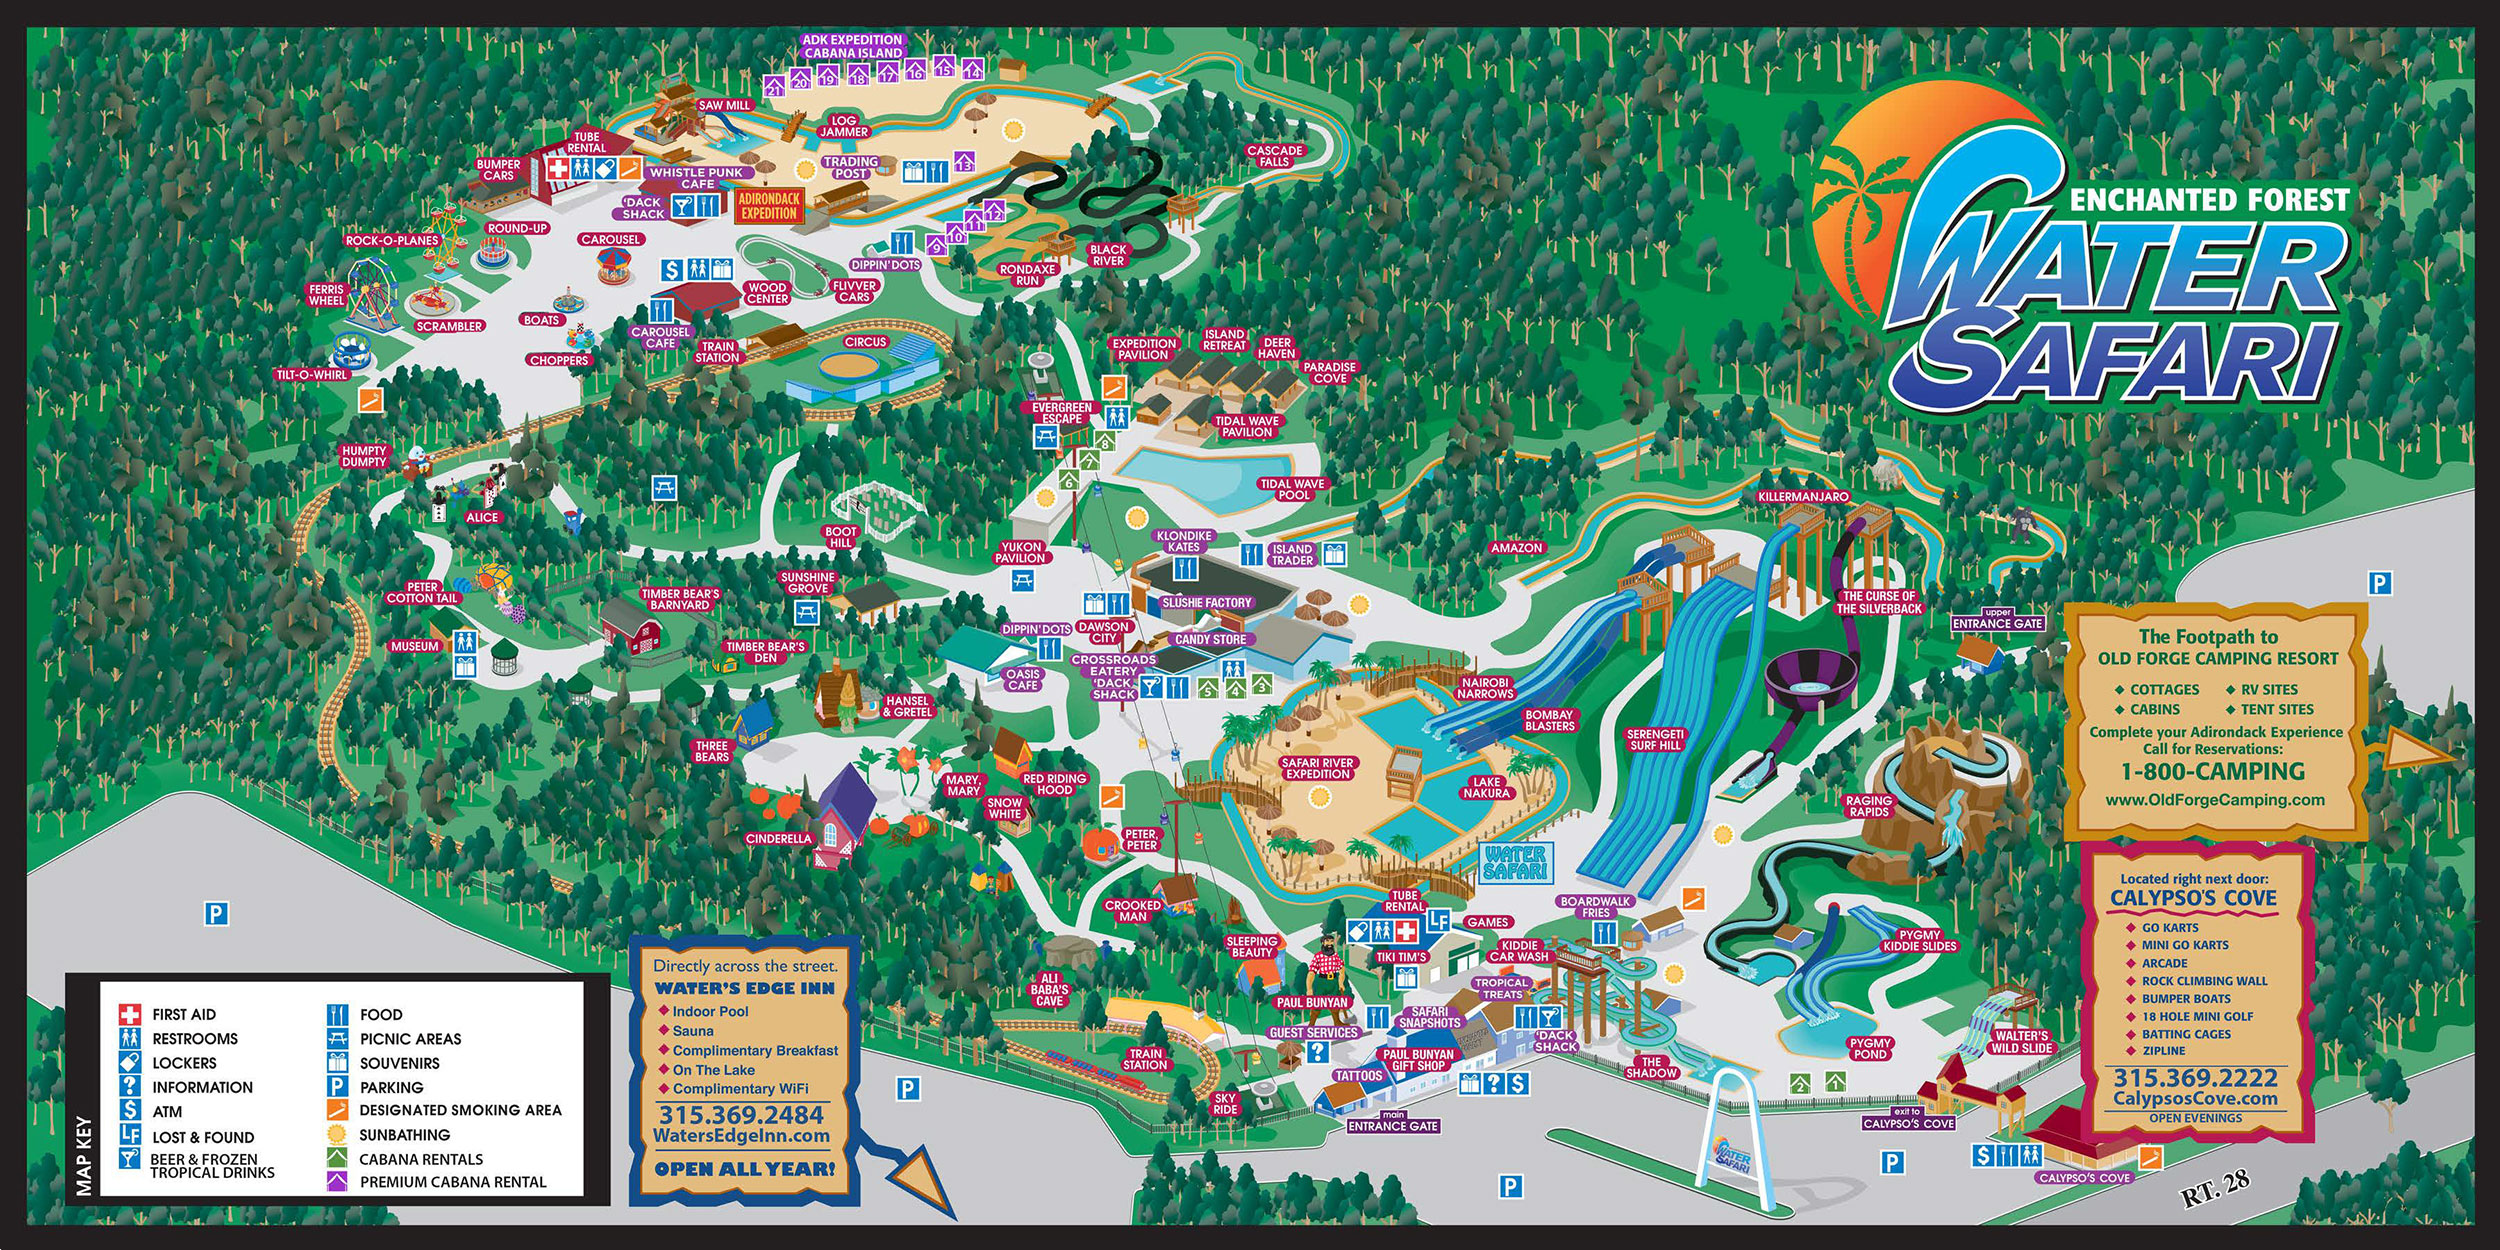 Interactive Park Map - Enchanted Forest Water Safari on western town map, greater vancouver map, new amsterdam map, city of new orleans map, unr parking map, ancient persia map, valley of kings map, city limits map, st thomas map, circuit map, cowboy map, colosseum map, red map, storybook map, colonial house map, princess map, usa travel map, ancient world map, magic map, encore map,